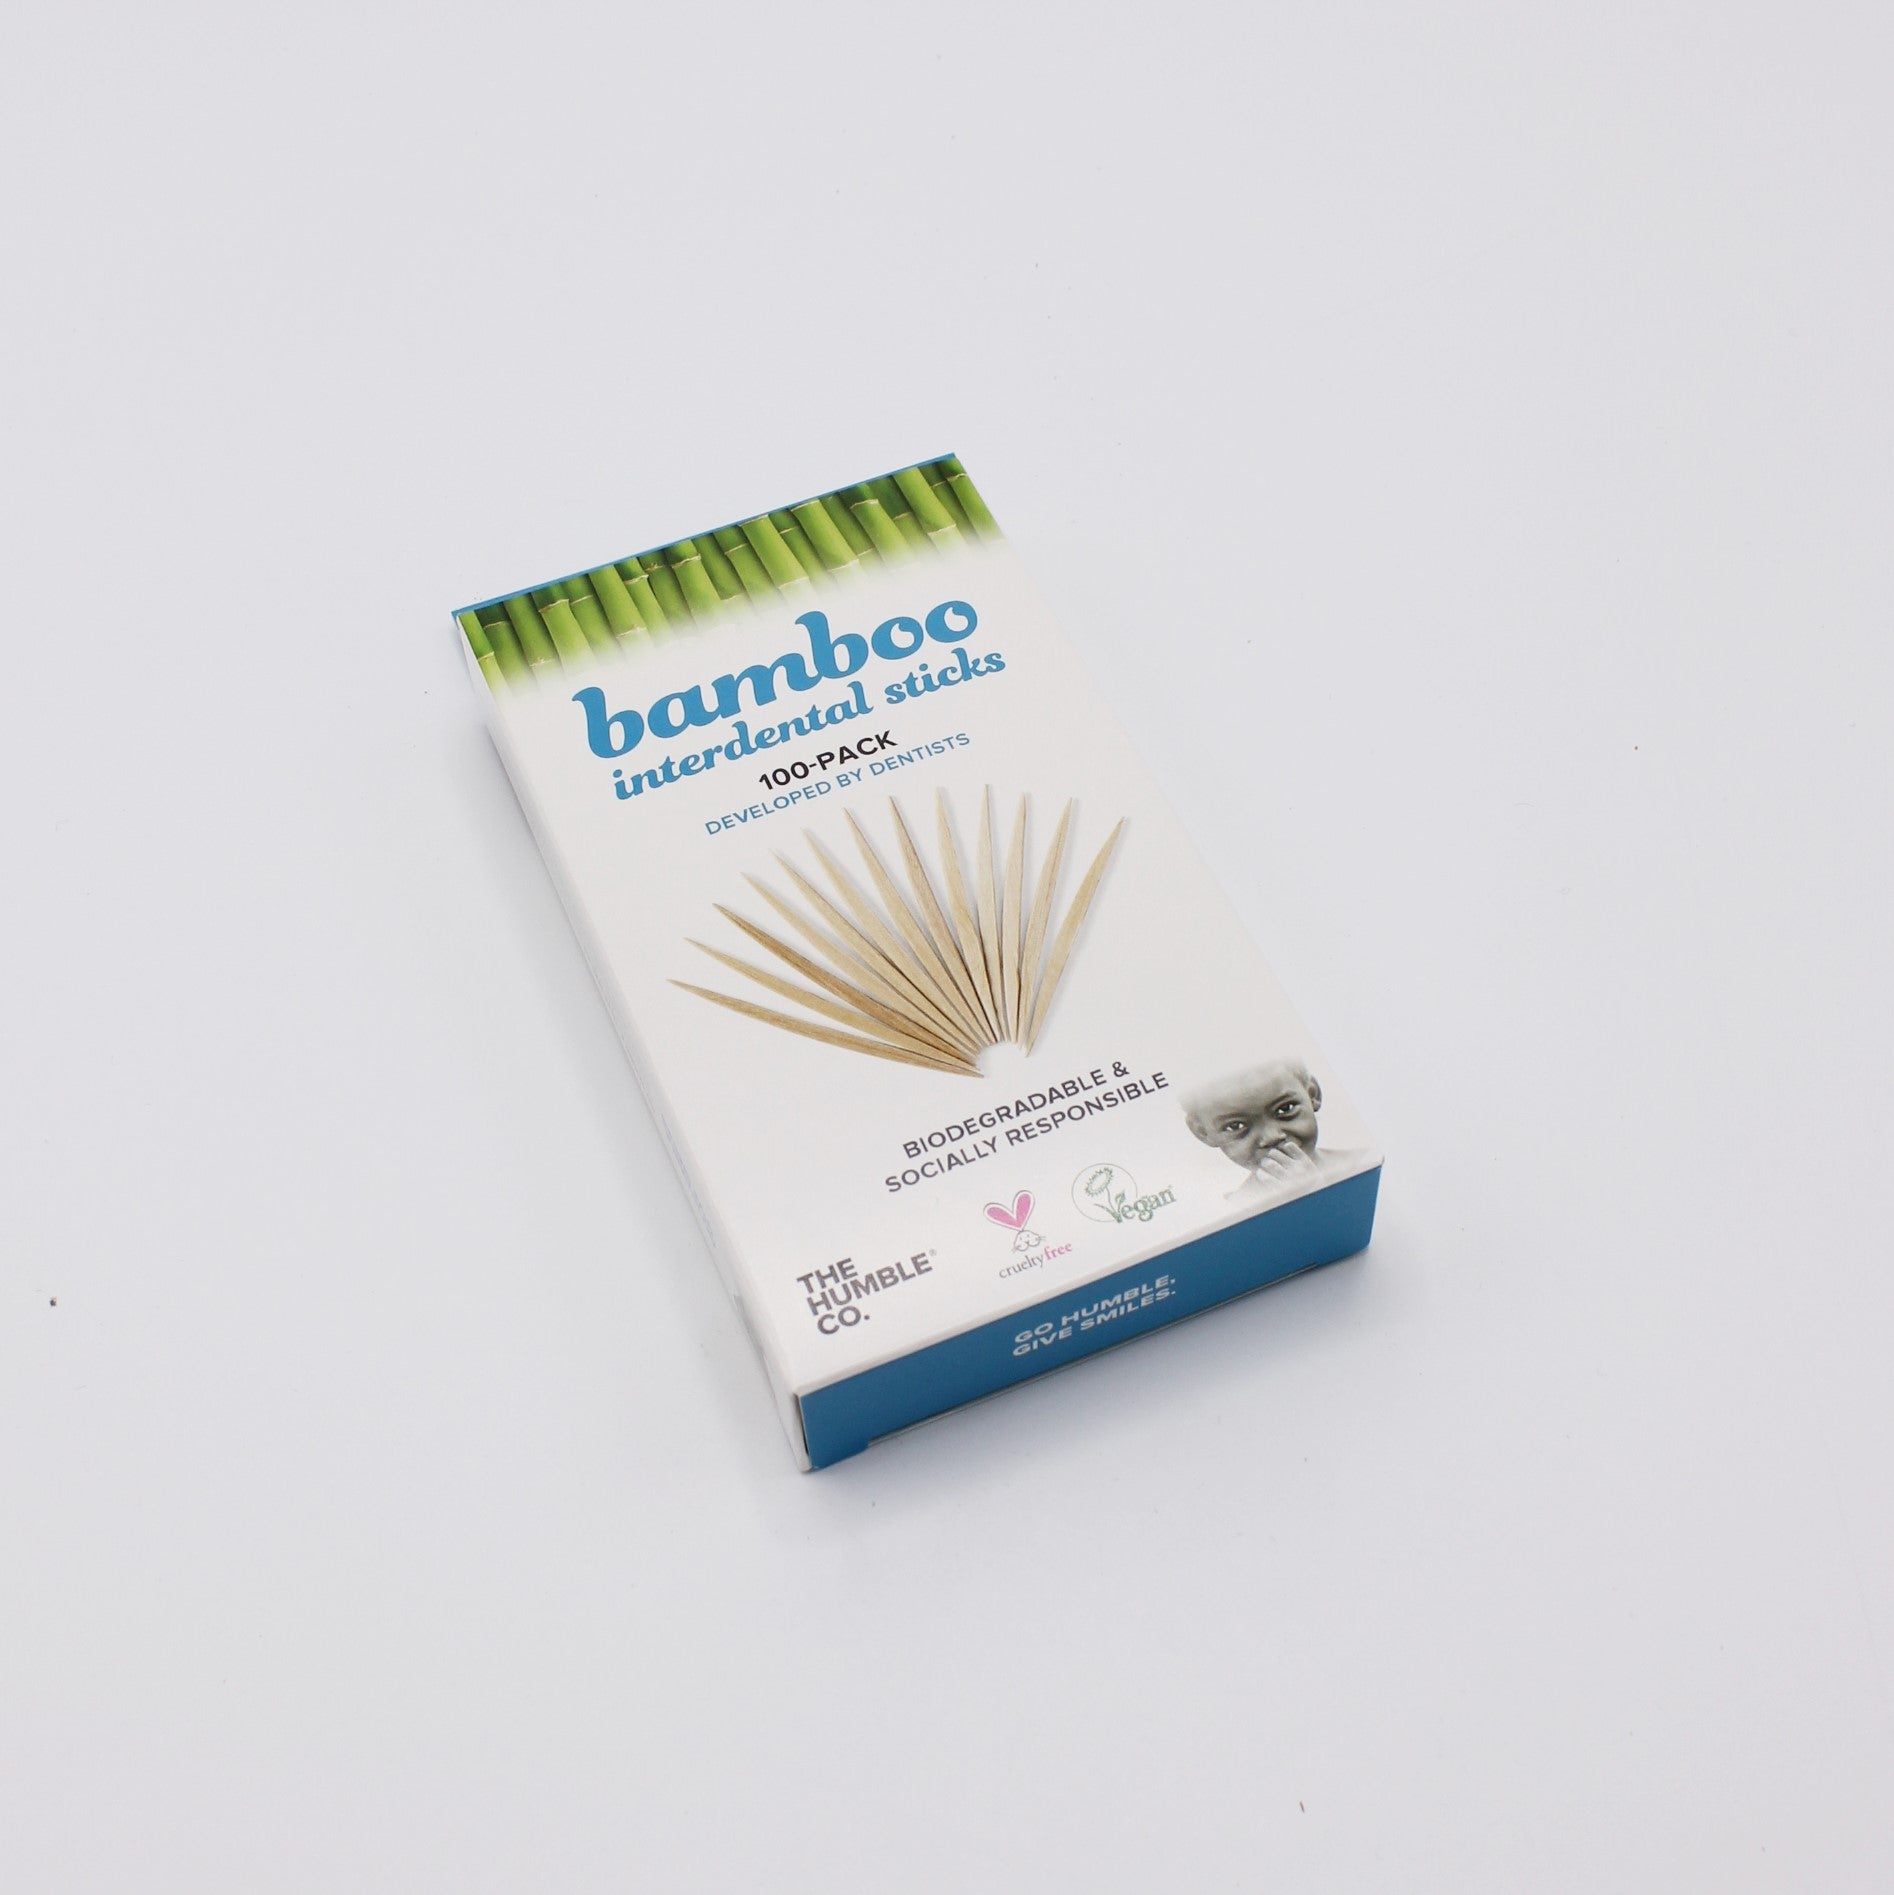 Tandenstokers interdental picks Humble Co